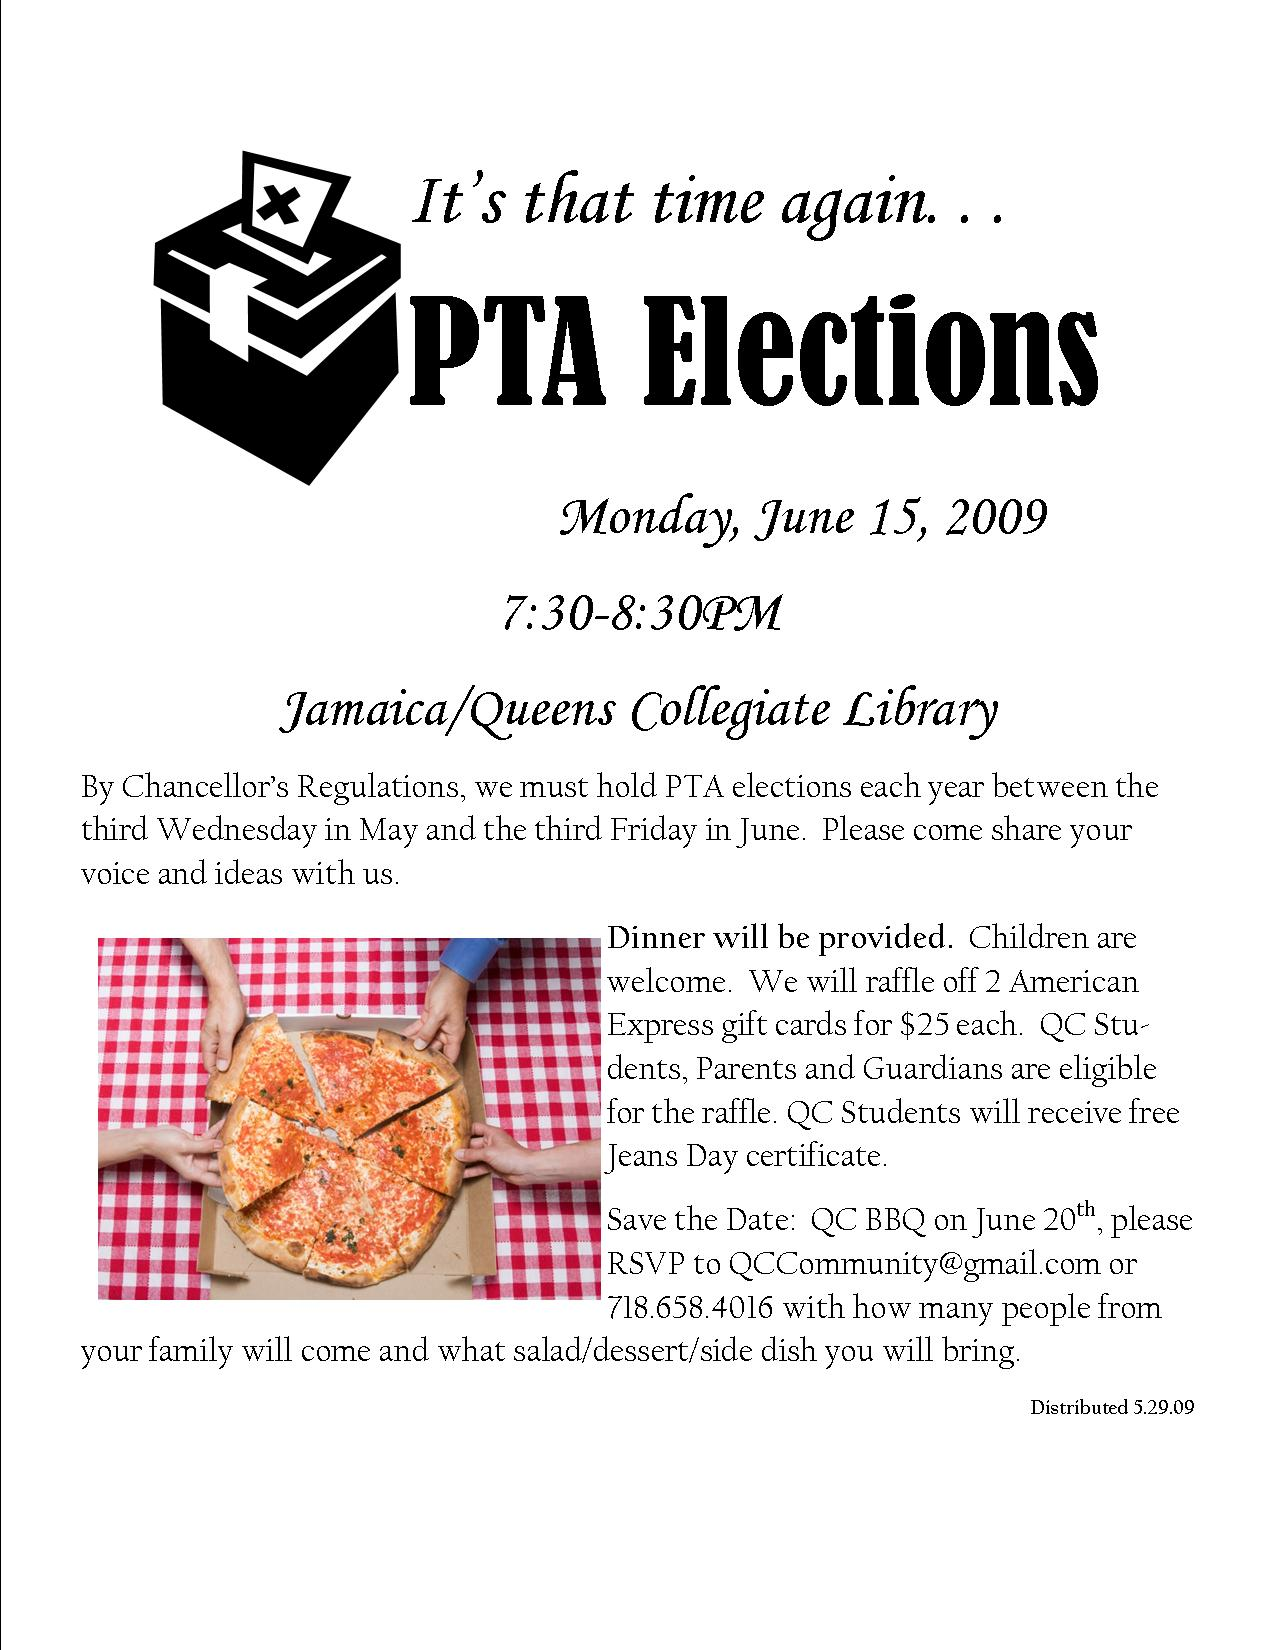 pta elections 6  15  09 7 30pm